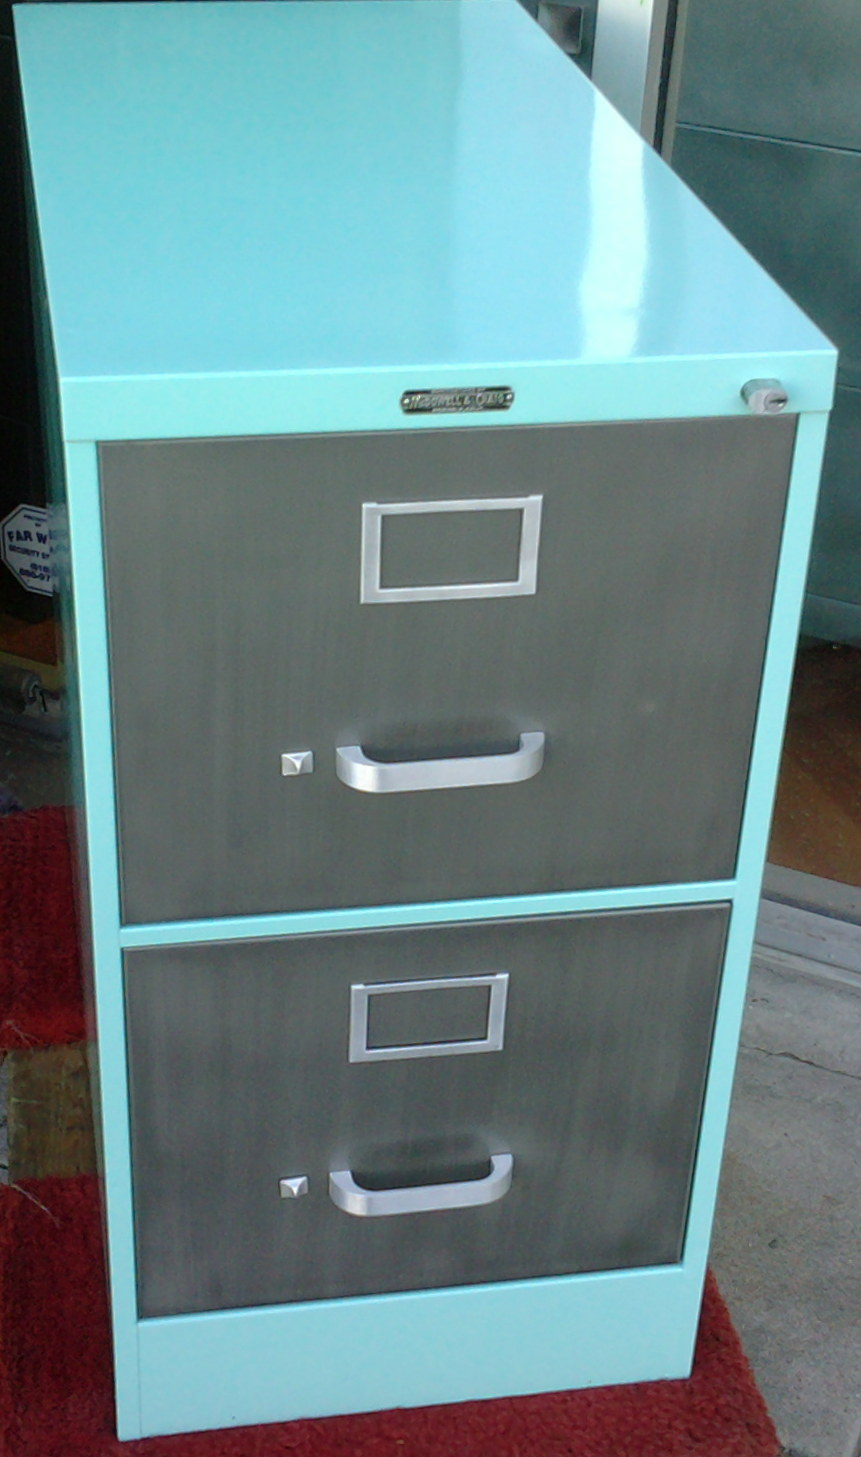 Great Custom Desk Made With Two Letter Size File Cabinets And 30D X 60W Top.  Brush Steel Top And Body With Red Drawers. Vintage Dark Gray Cole Steel  Cabinet With ...